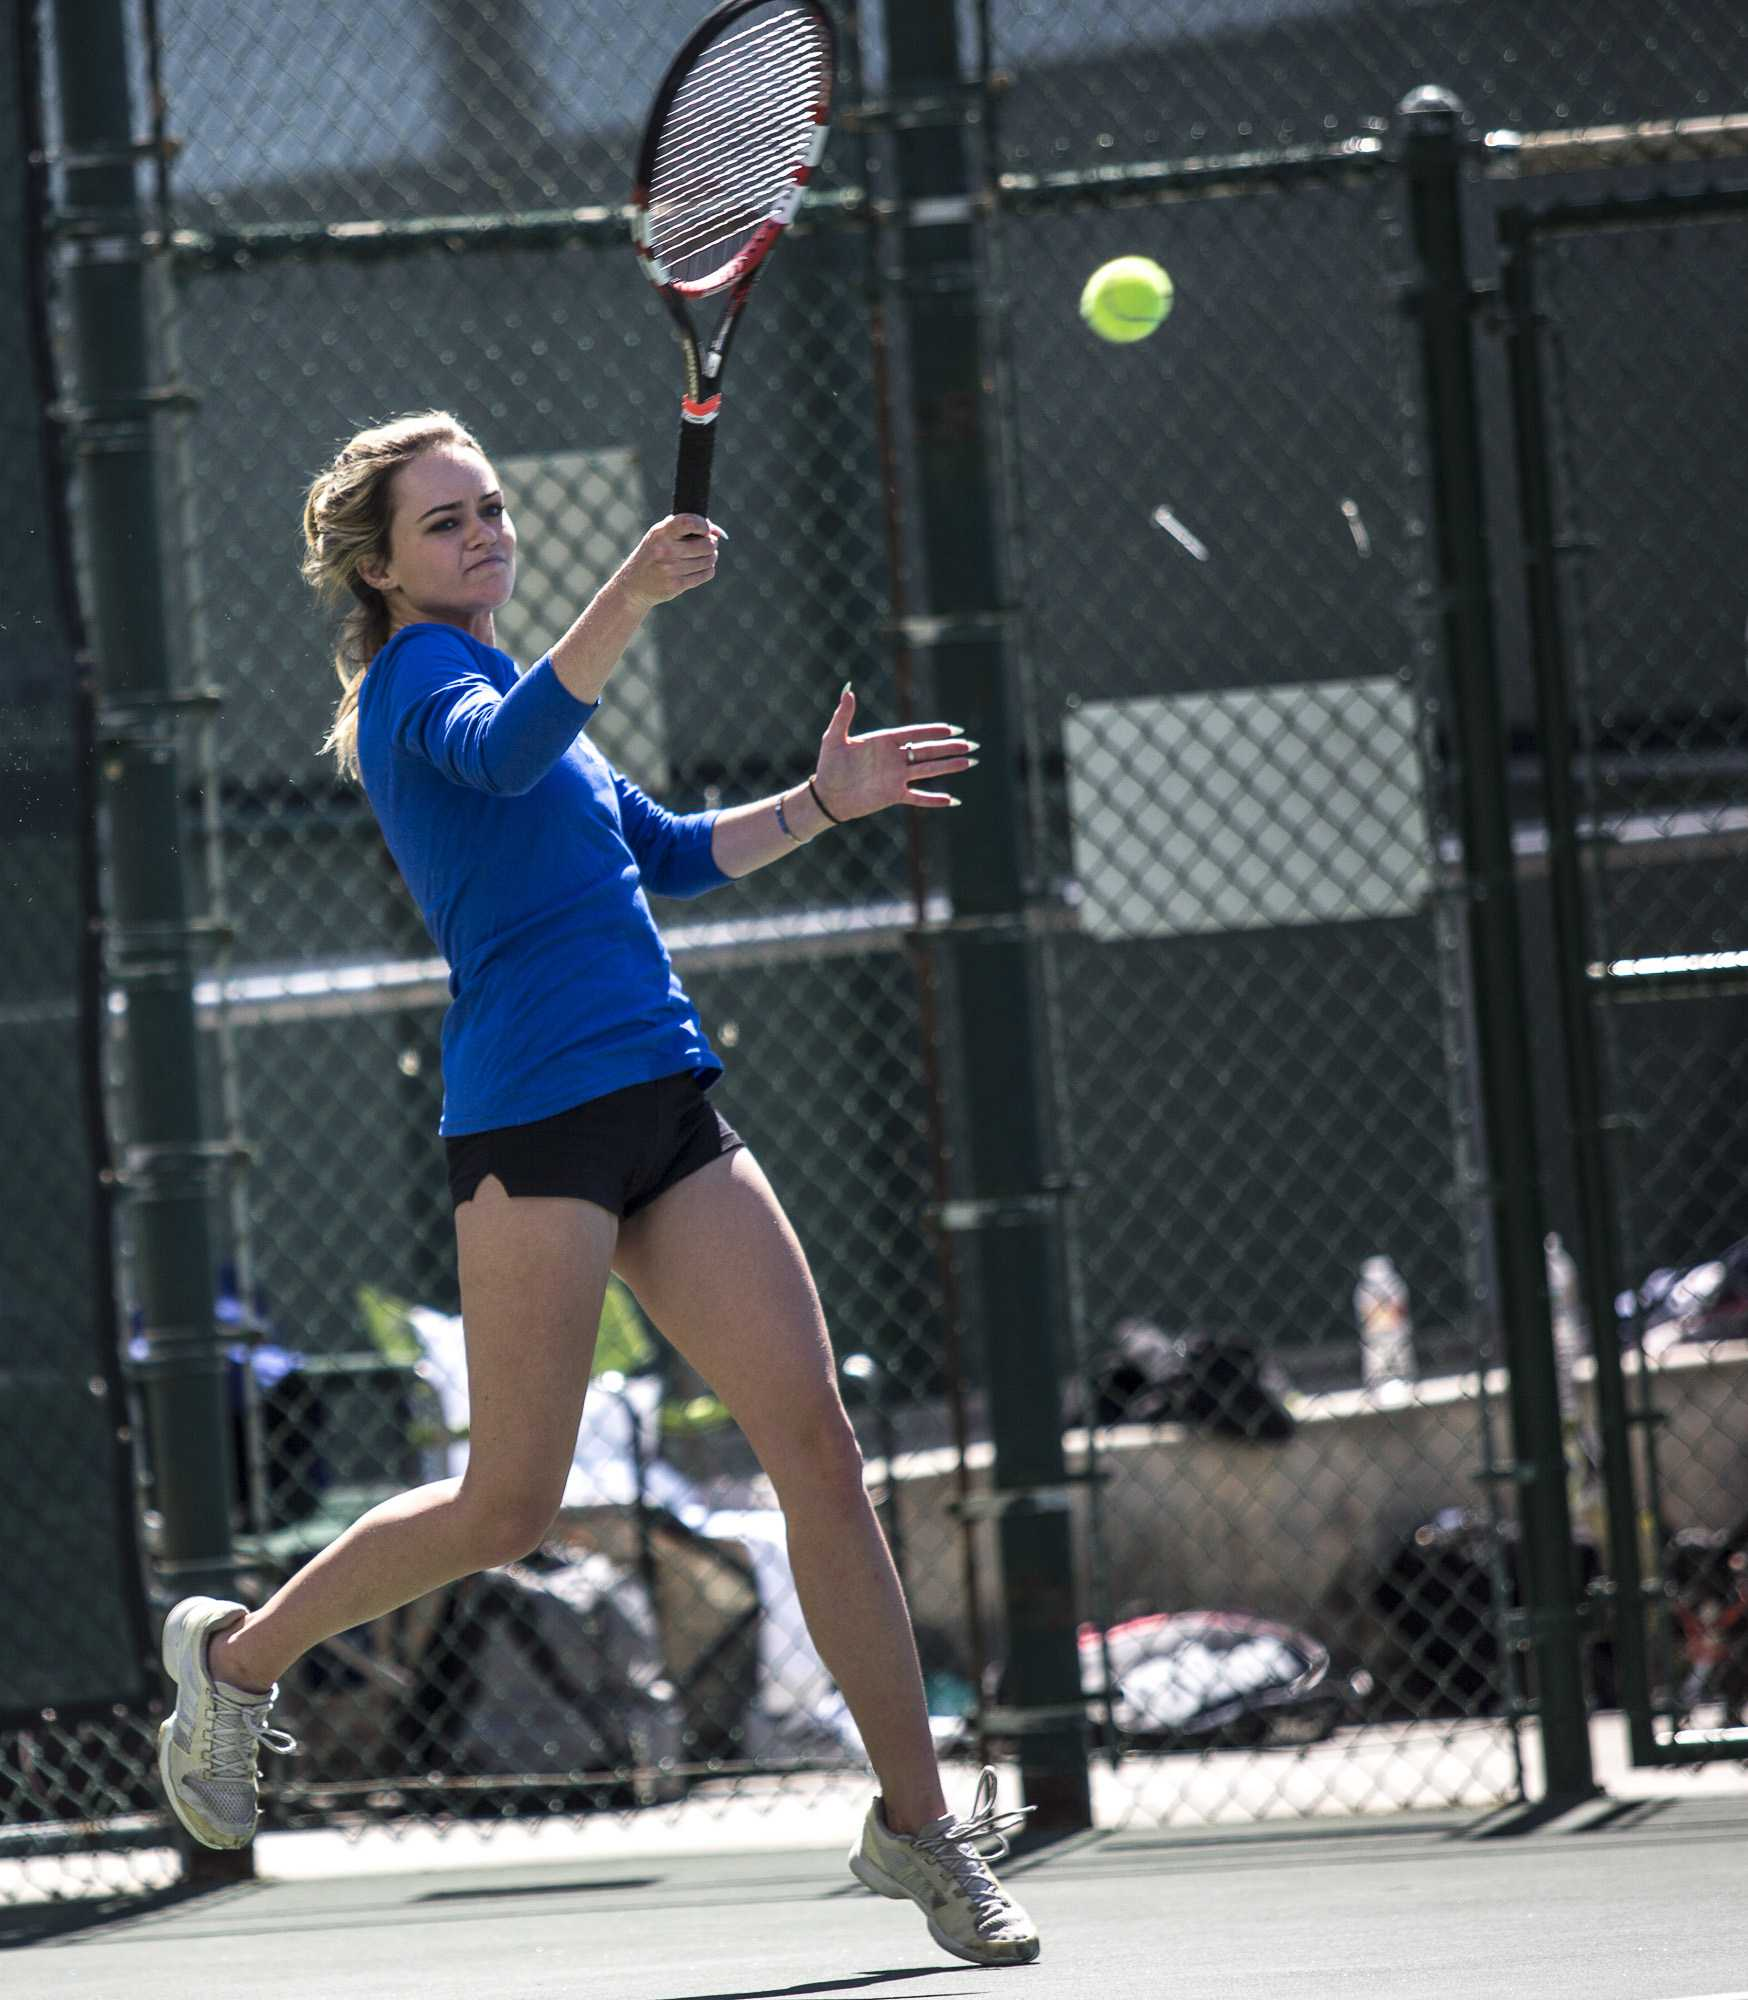 Santa Monica College Corsair freshman Abby Mullins  (#2, singles) hits a high forehand (hard shot) at her Ventura College Pirate opponent during her 2 – 0 (6-2, 6-1) set victory, which was part of the Corsairs 7 - 1 blowout victory against the Ventura College Pirates at the Ocean View Park Tennis Courts in Santa Monica Calif., on Thursday, March 23 2017. (Corsair Photo: Matthew Martin)